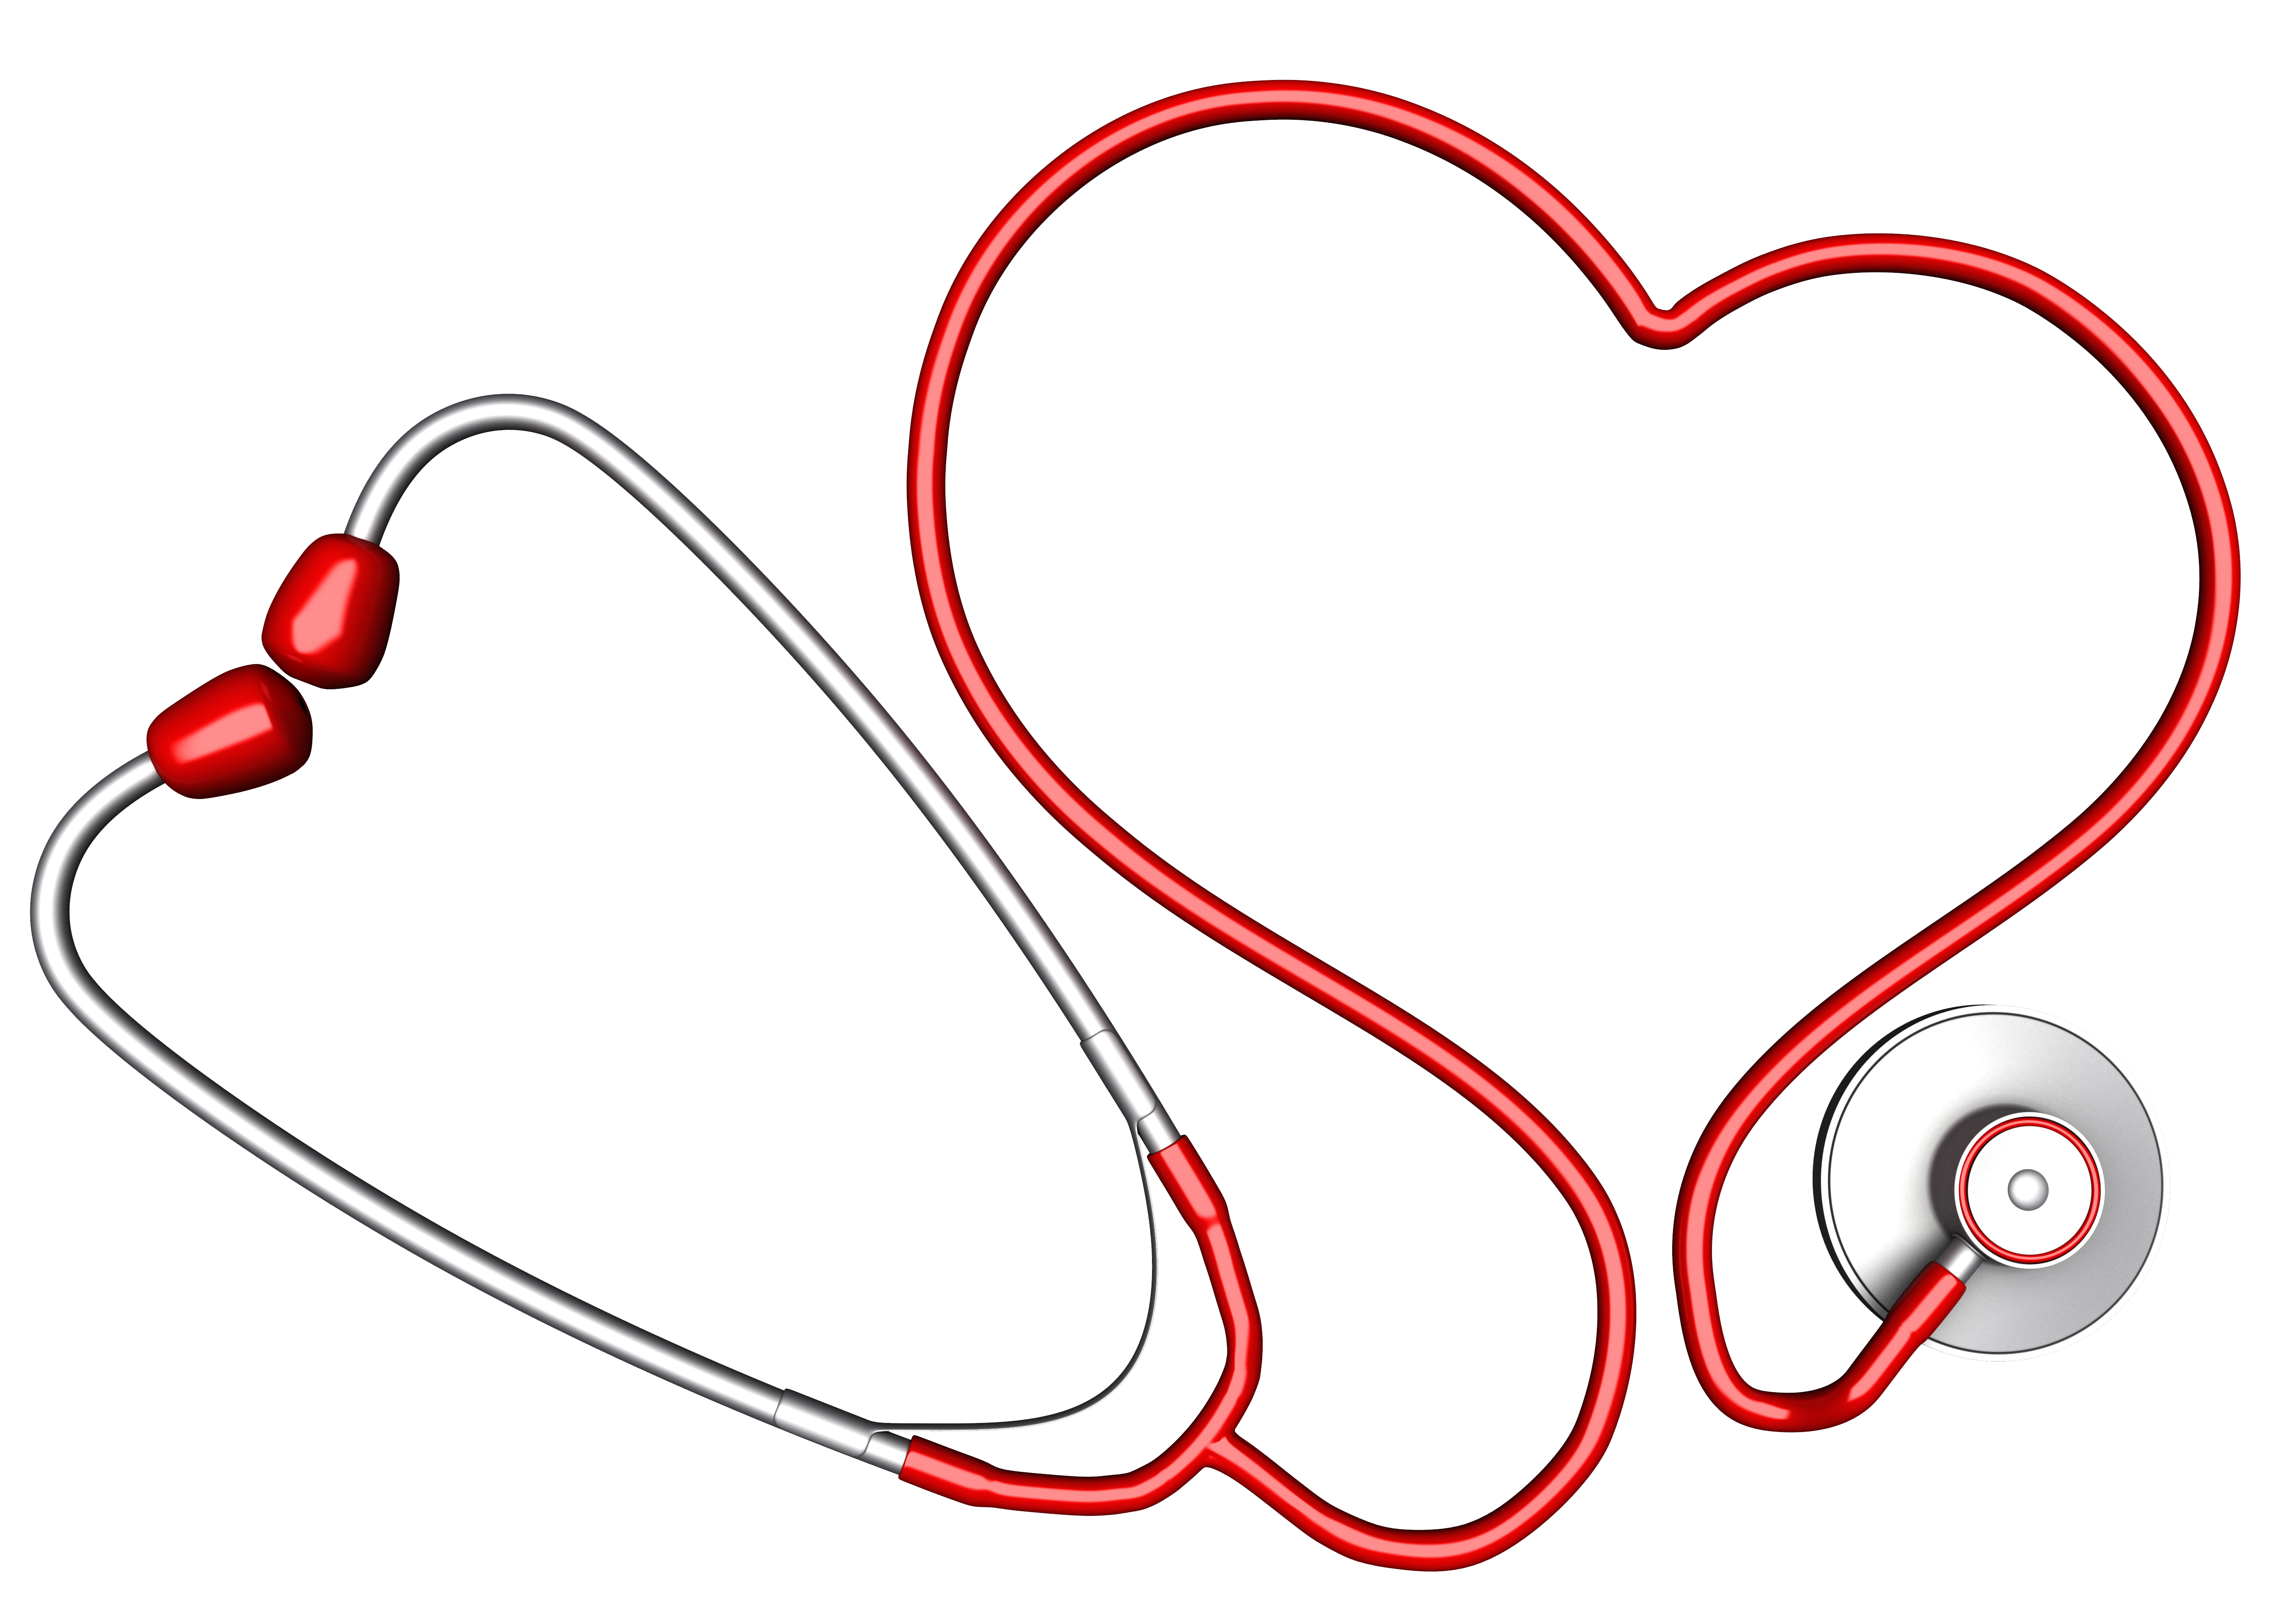 Nursing stock photography clip. Transparent stethoscope shape heart banner royalty free download